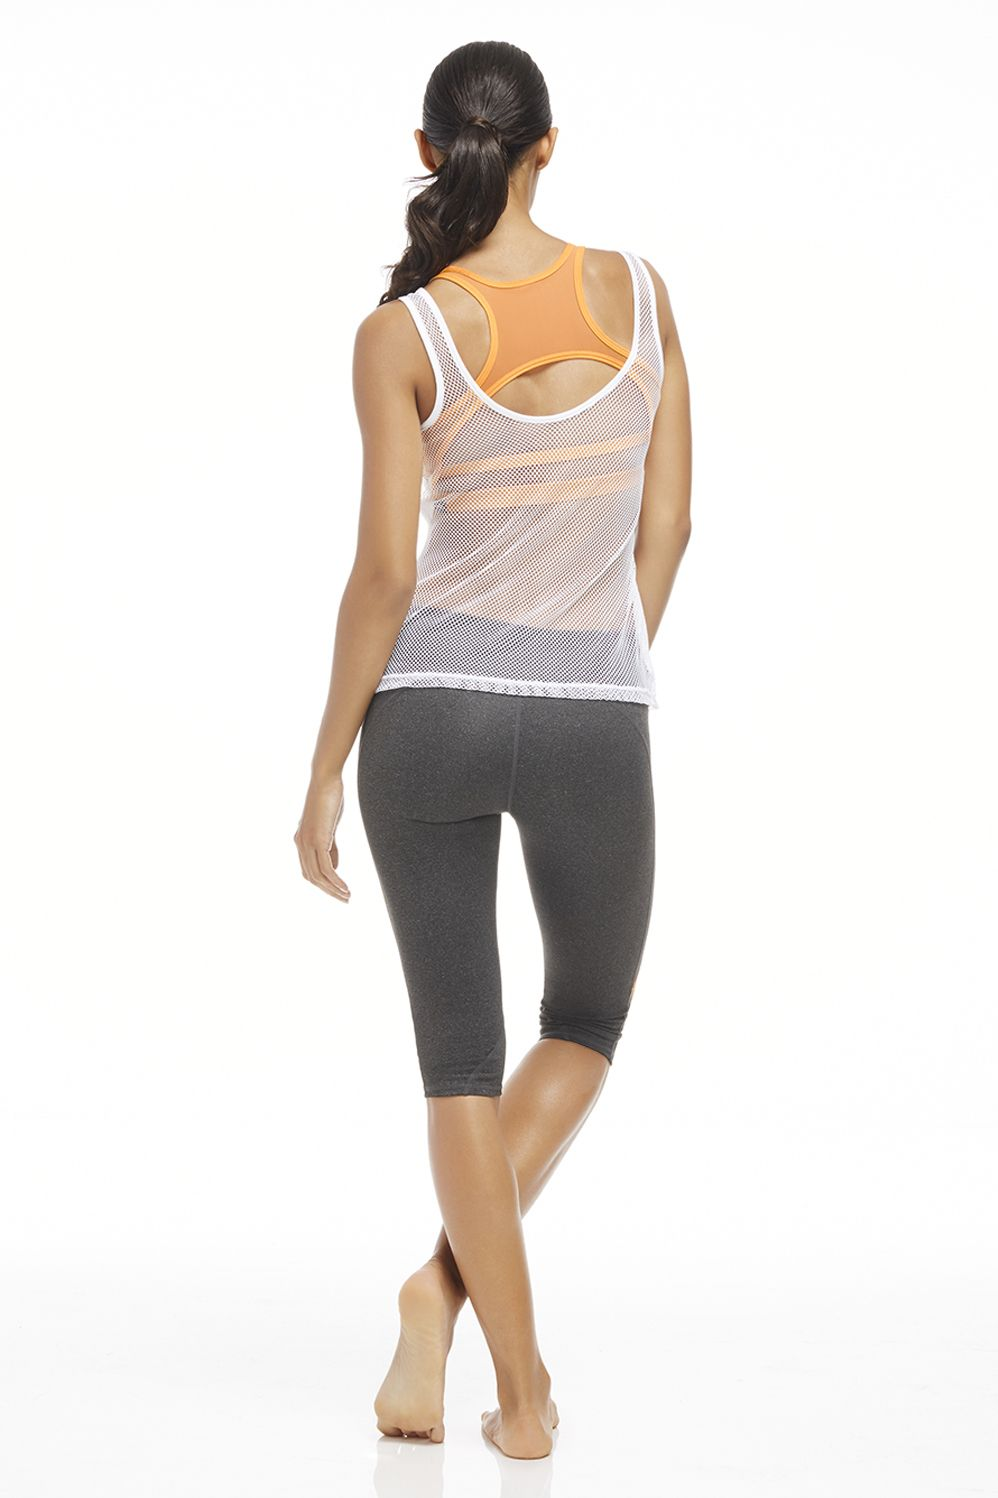 Pin by DESIGN RESEARCH on WOMENS Stylish workout clothes